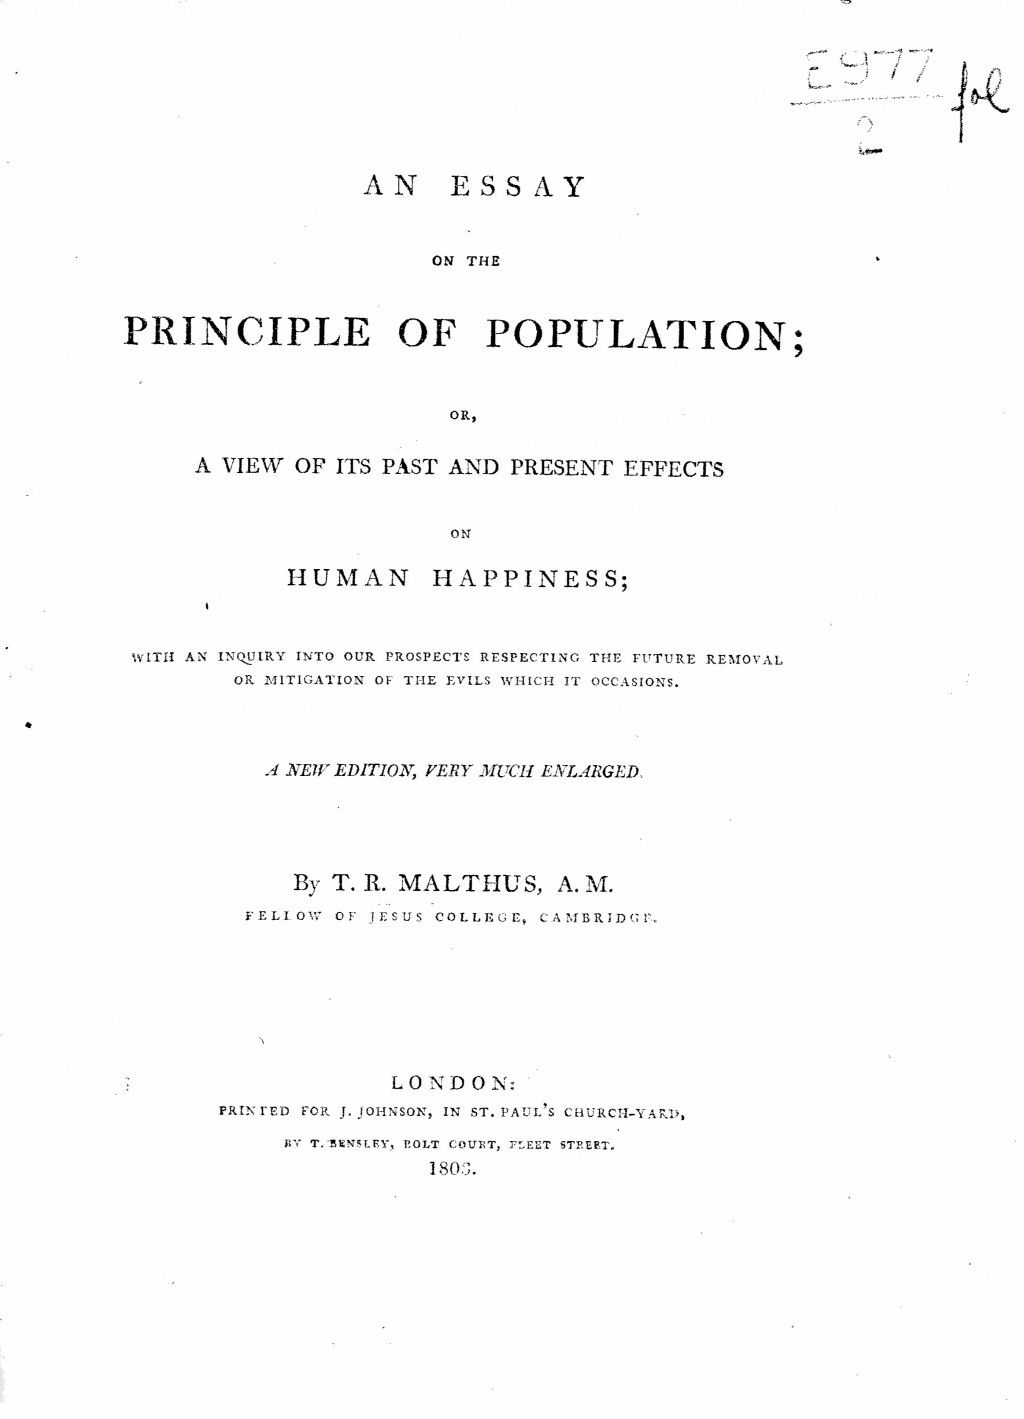 007 An Essay On The Principle Of Population Example Fascinating By Thomas Malthus Pdf In Concluded Which Following Large